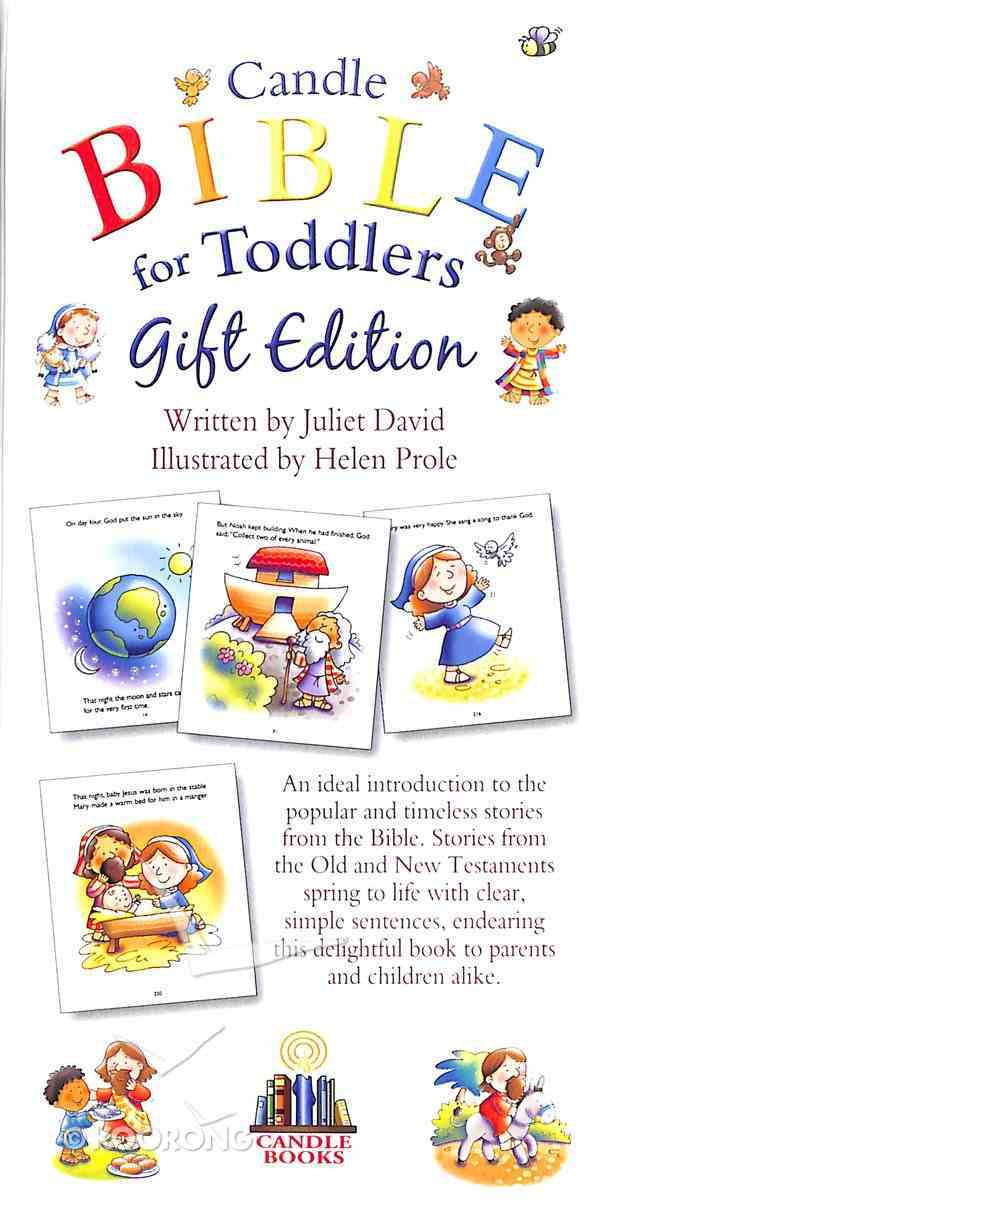 Candle Bible For Toddlers - Gift Edition (White) (Candle Bible For Toddlers Series) Imitation Leather